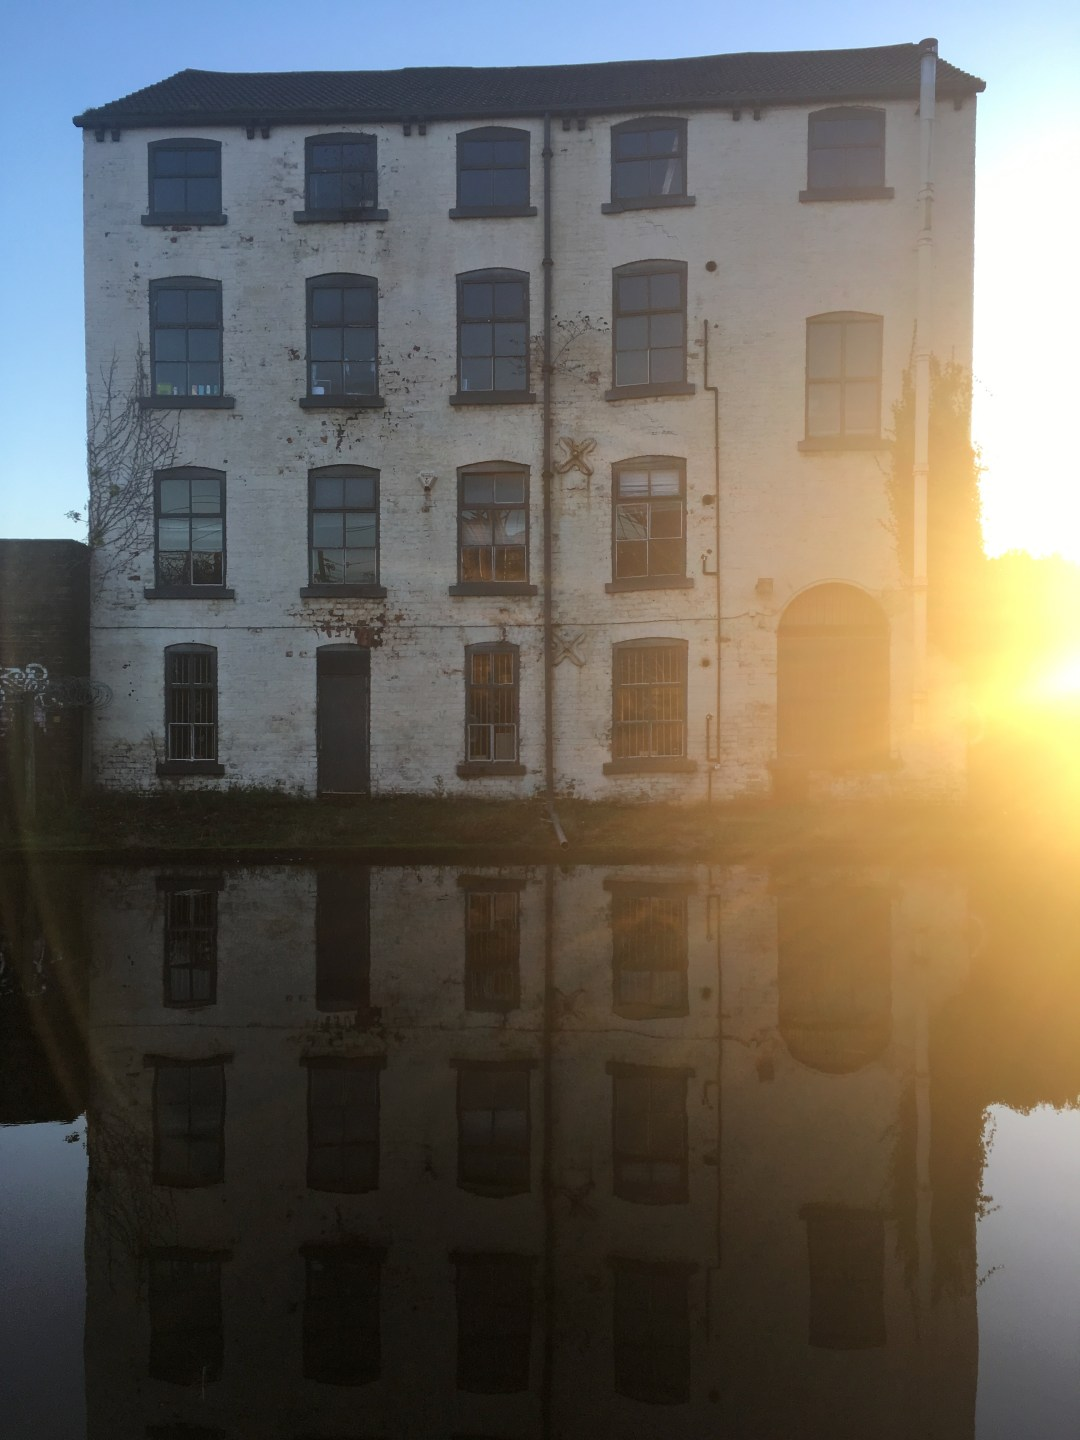 Sunset flares from behind abandoned building sitting on a river bank in Leeds